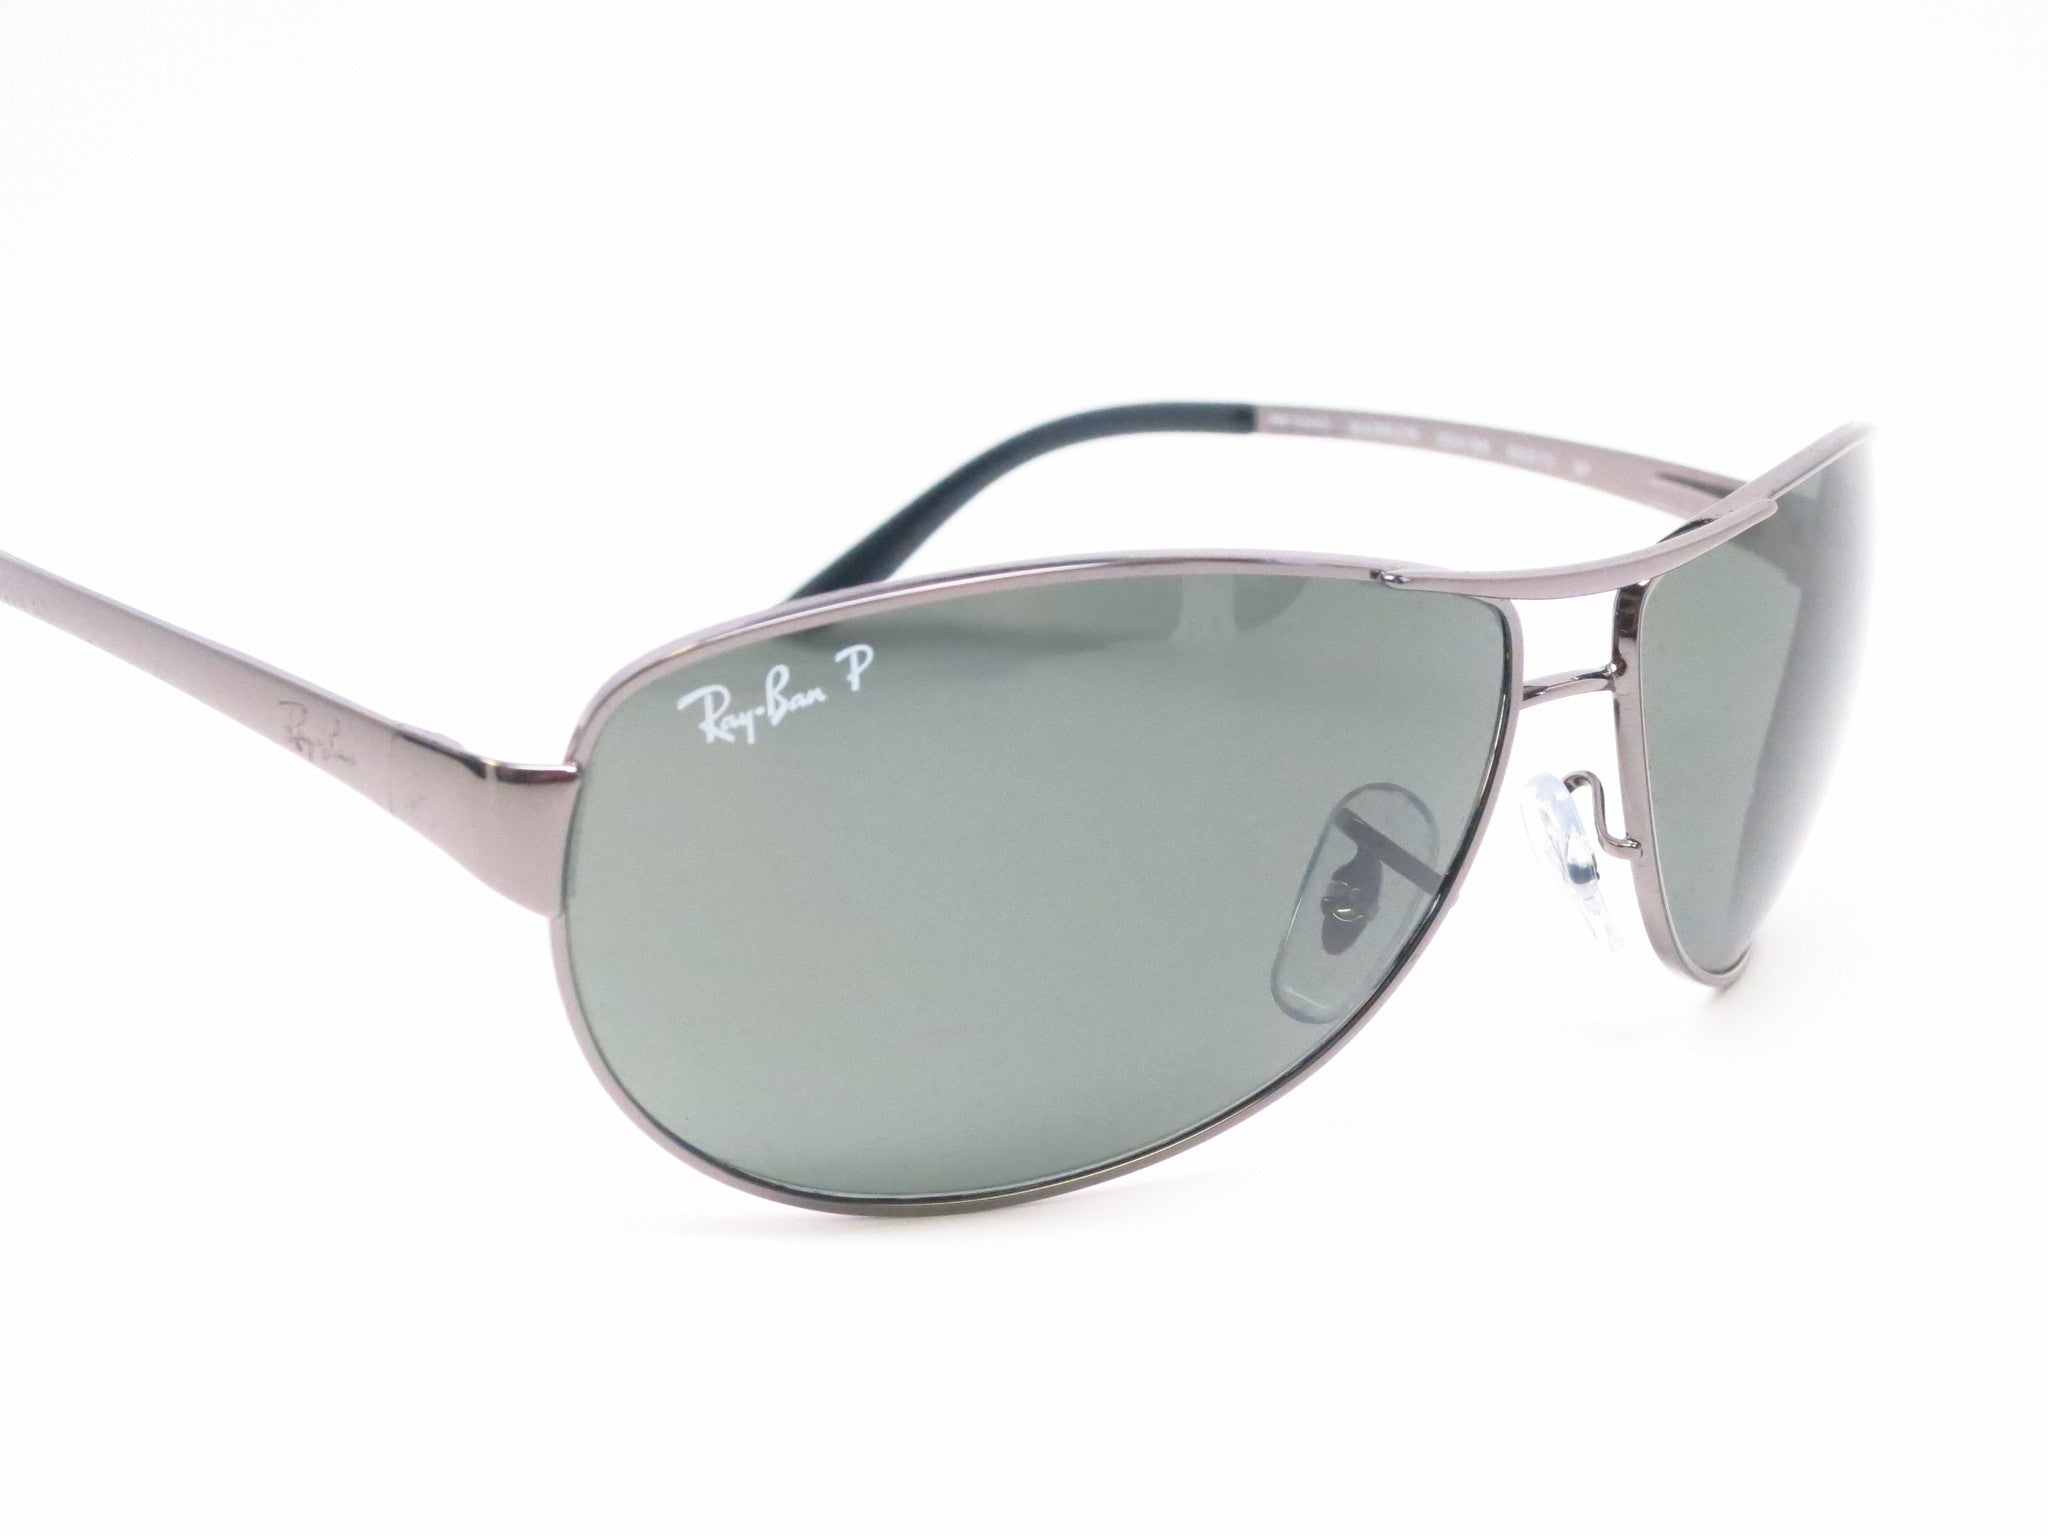 c0ed4e48d0 ... Ray-Ban RB 3342 Warrior 004/58 Gunmetal Polarized Sunglasses - Eye  Heart Shades ...